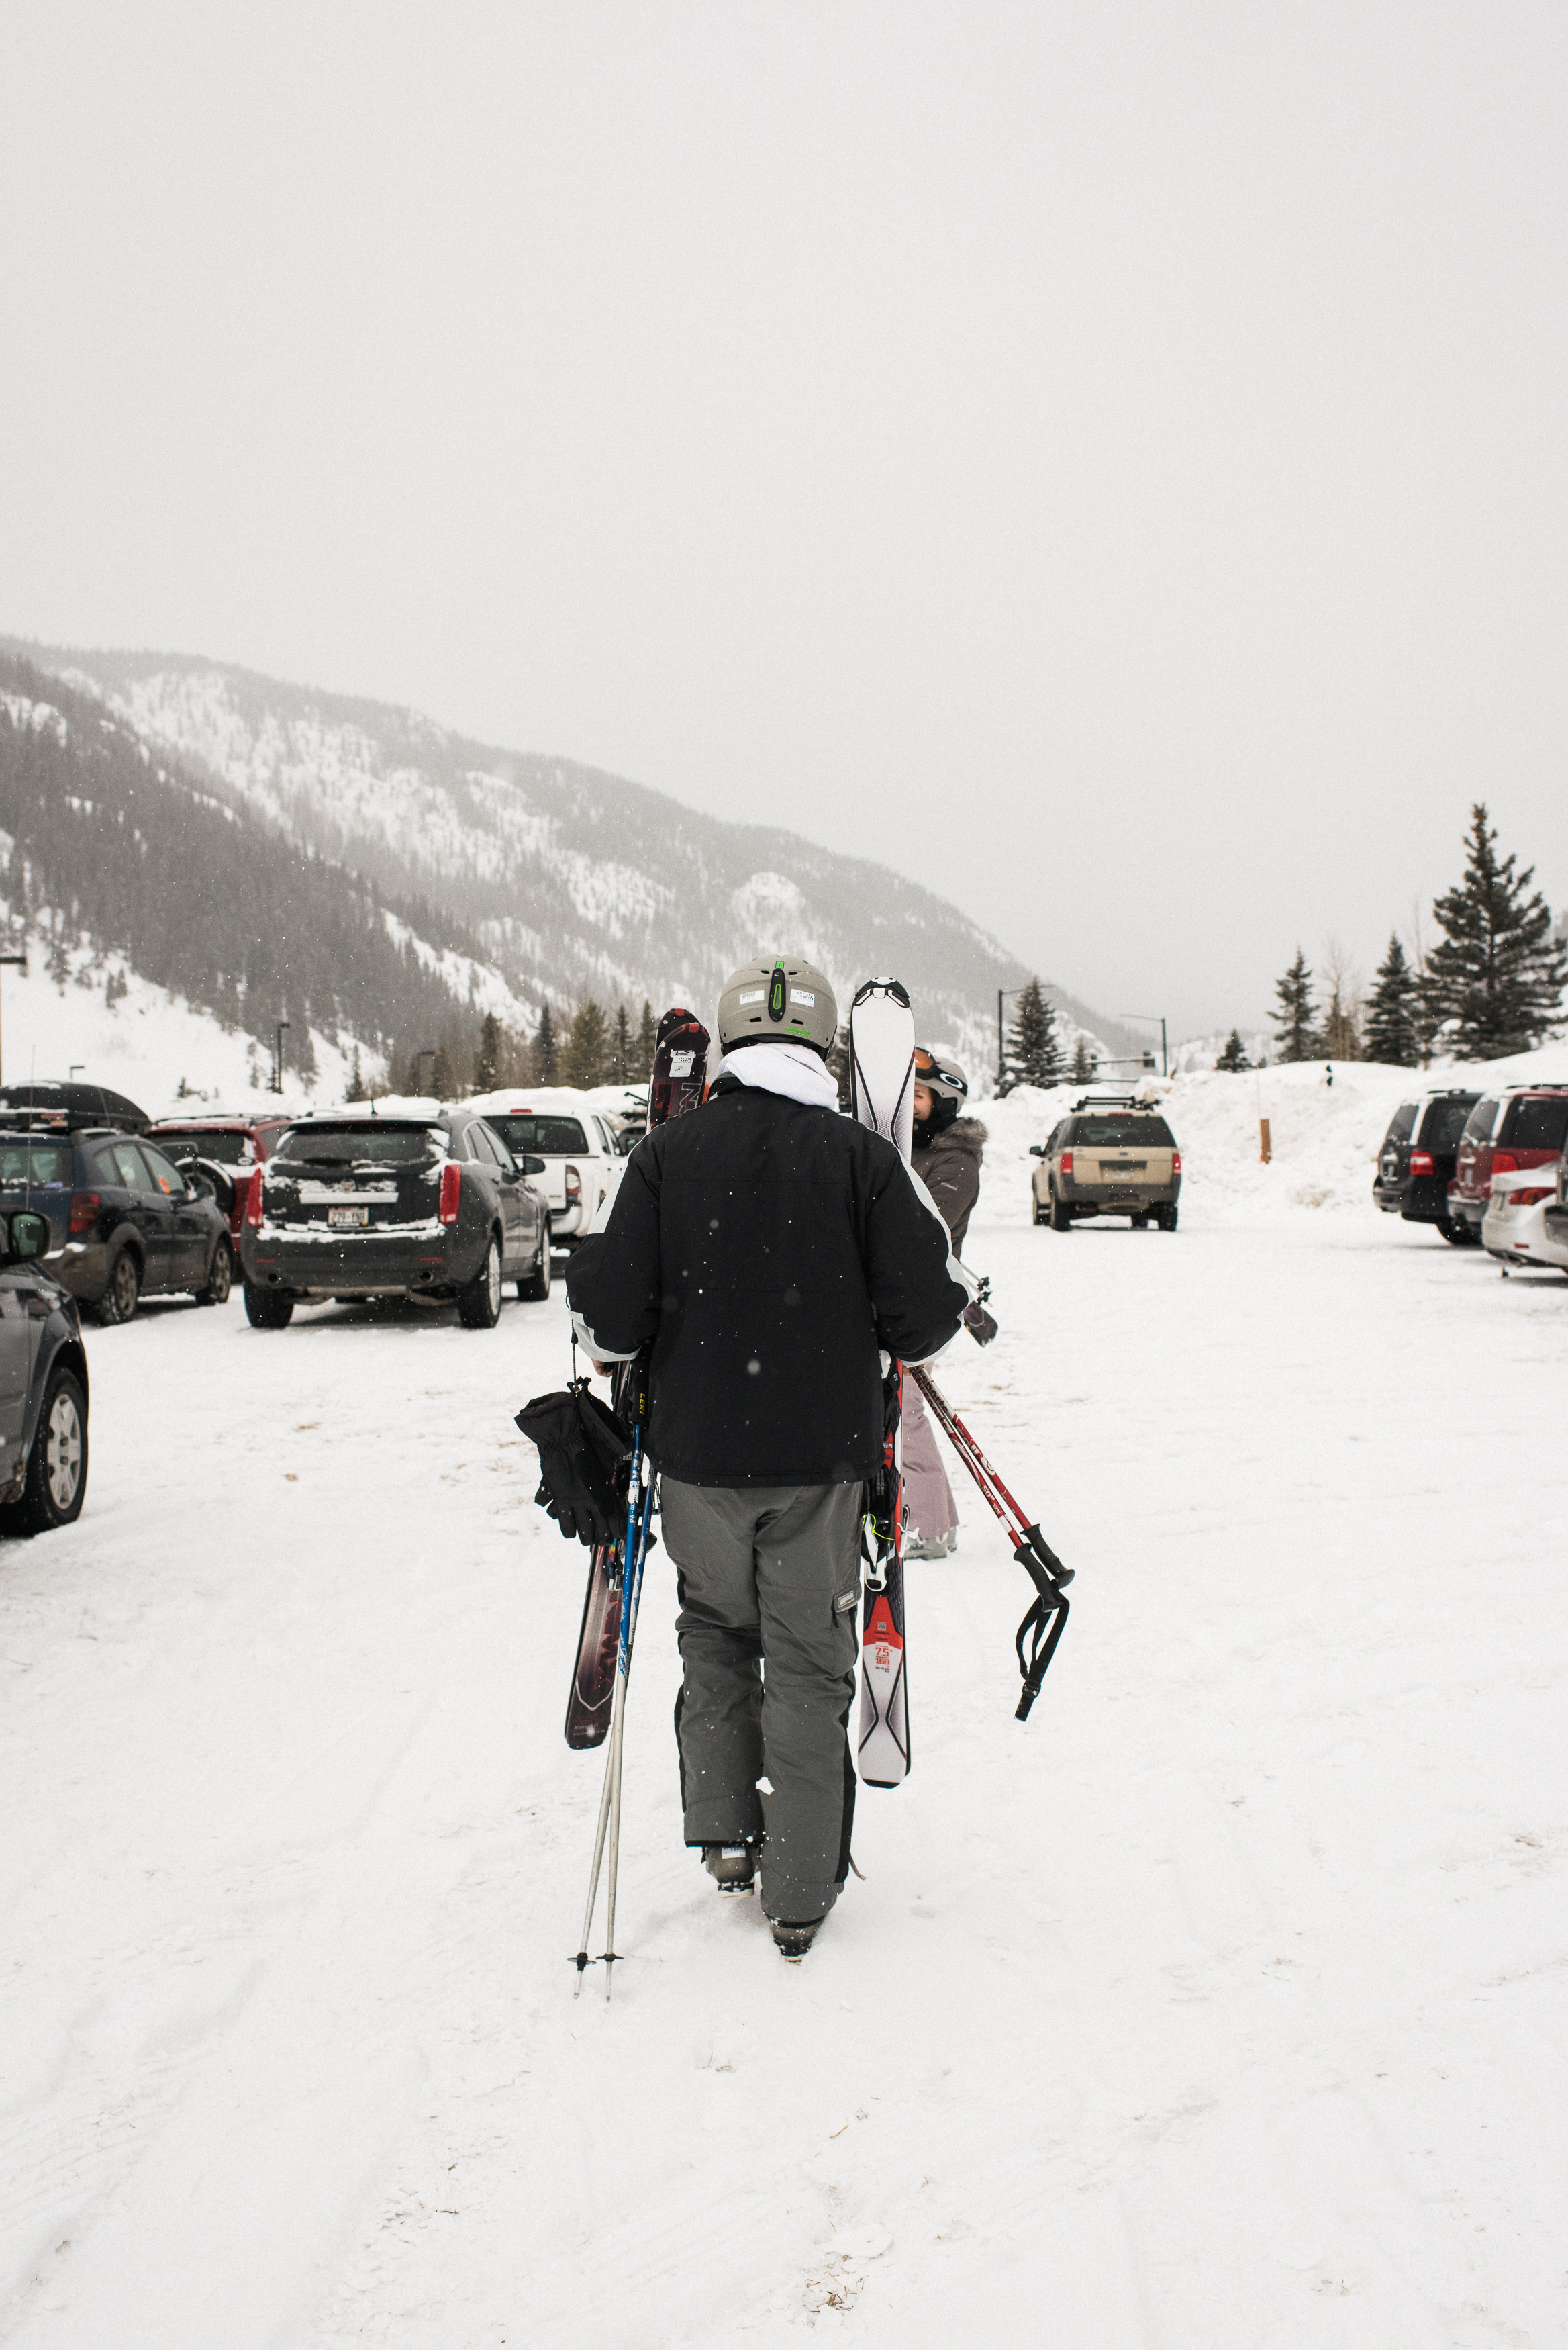 TaraShupe_Outdoor_Photographer_Loweprobags_Colorado_Copper_Mountains_Ski_05.jpg